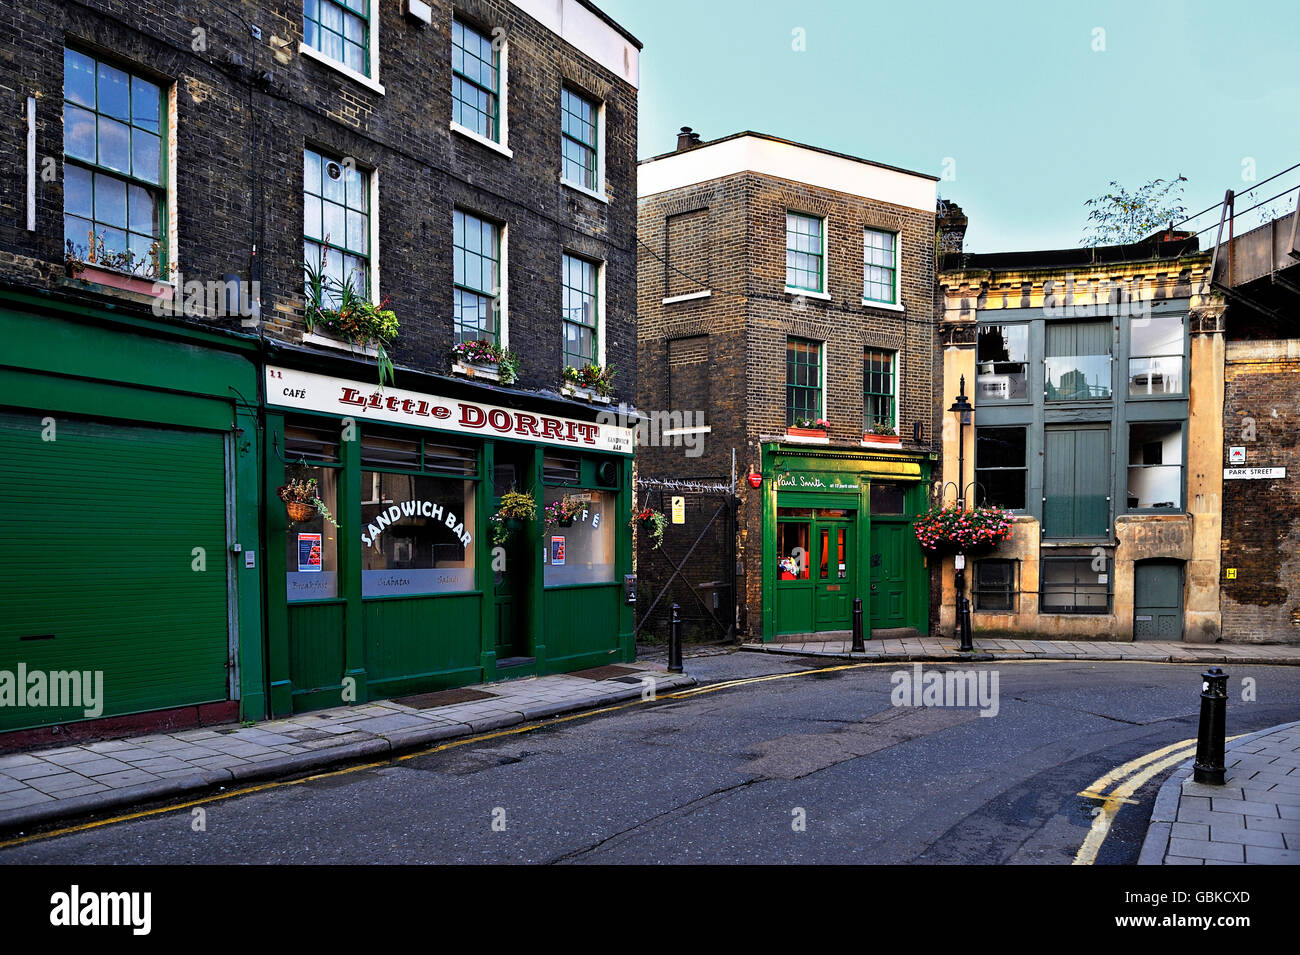 Borough Market, London, England, United Kingdom, Europe - Stock Image